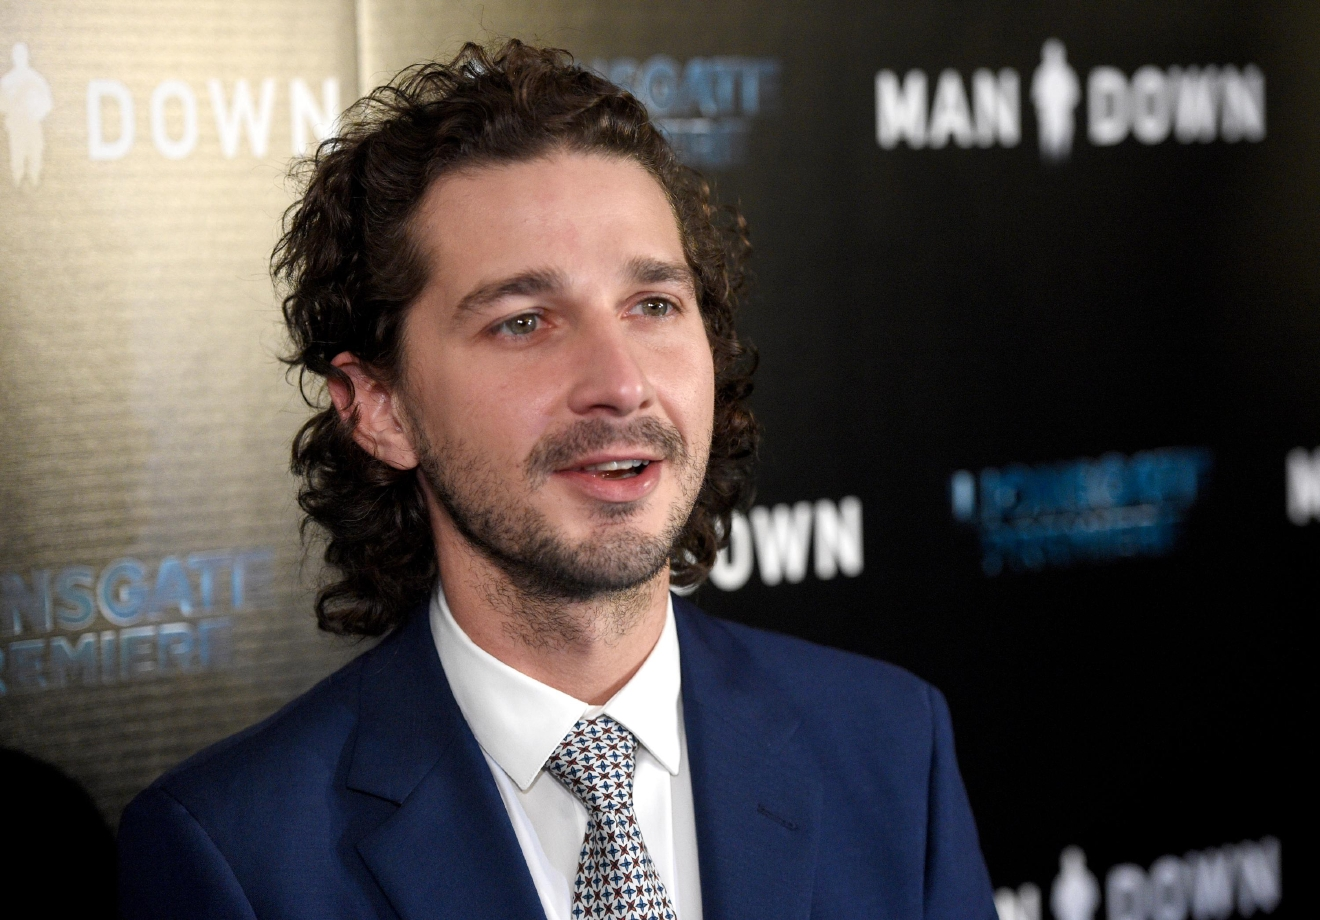 "FILE - In this Nov. 30, 2016 file photo, Shia LaBeouf arrives at the Los Angeles premiere of ""Man Down"" at ArcLight Cinemas Hollywood. LaBeouf has been arrested early Thursday morning, Jan. 26, 2017, after he allegedly got into an altercation with another man outside a New York City museum. Police say LaBeouf pulled the scarf of an unidentified 25-year-old man early Thursday morning outside the Museum of the Moving Image in Queens, scratching his face in the process. (Photo by Chris Pizzello/Invision/AP, File)"